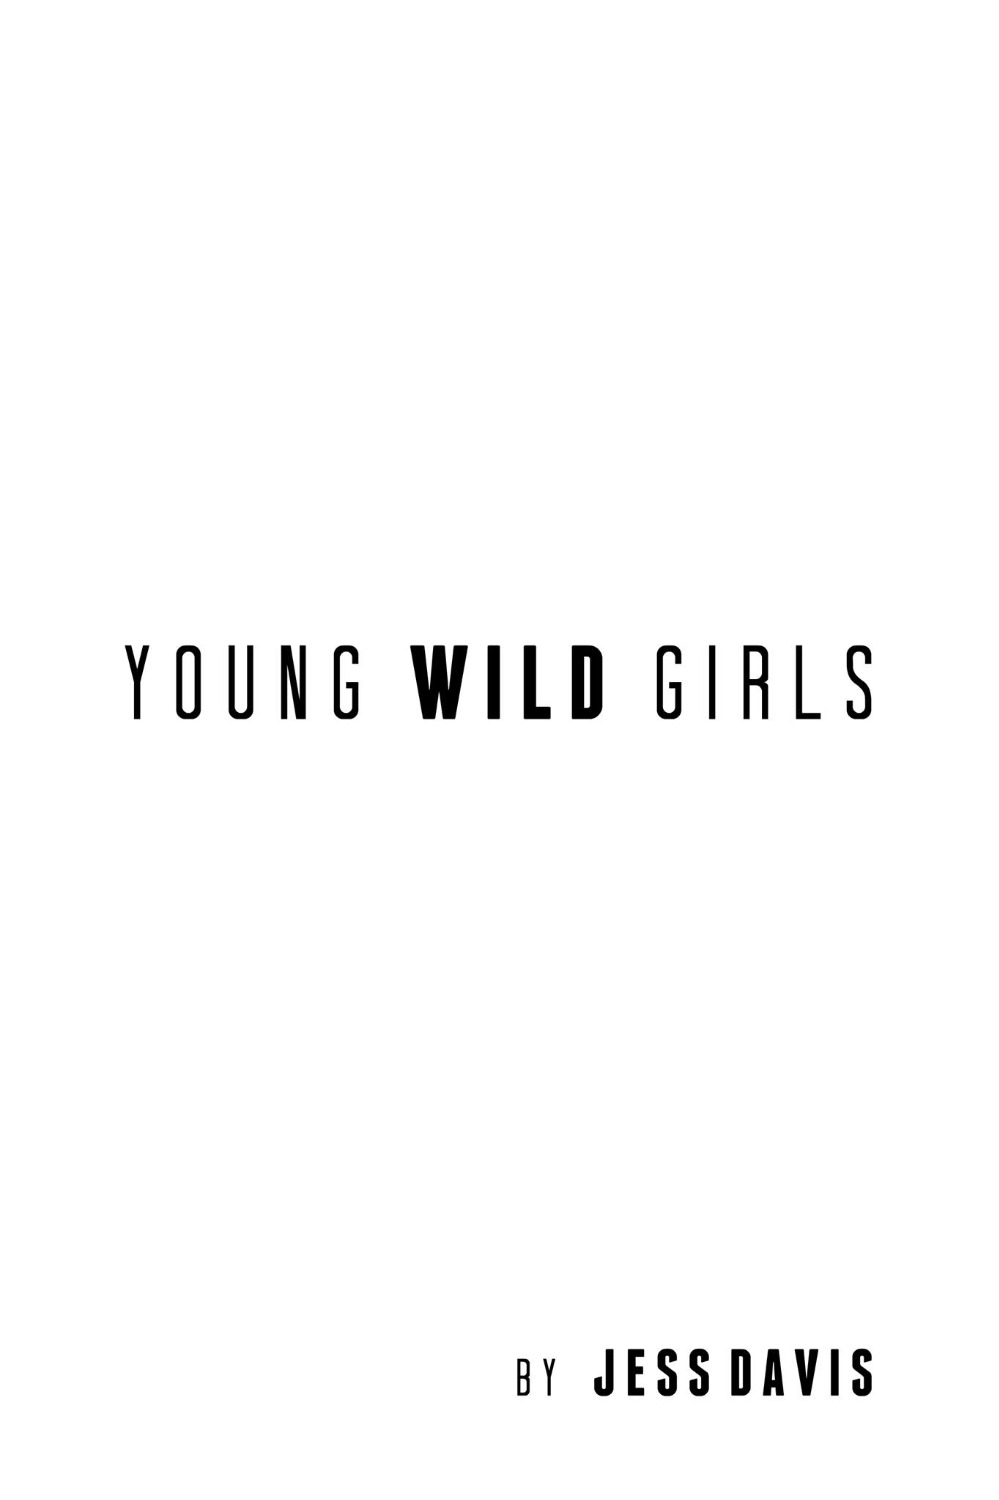 YOUNG WILD GIRLS